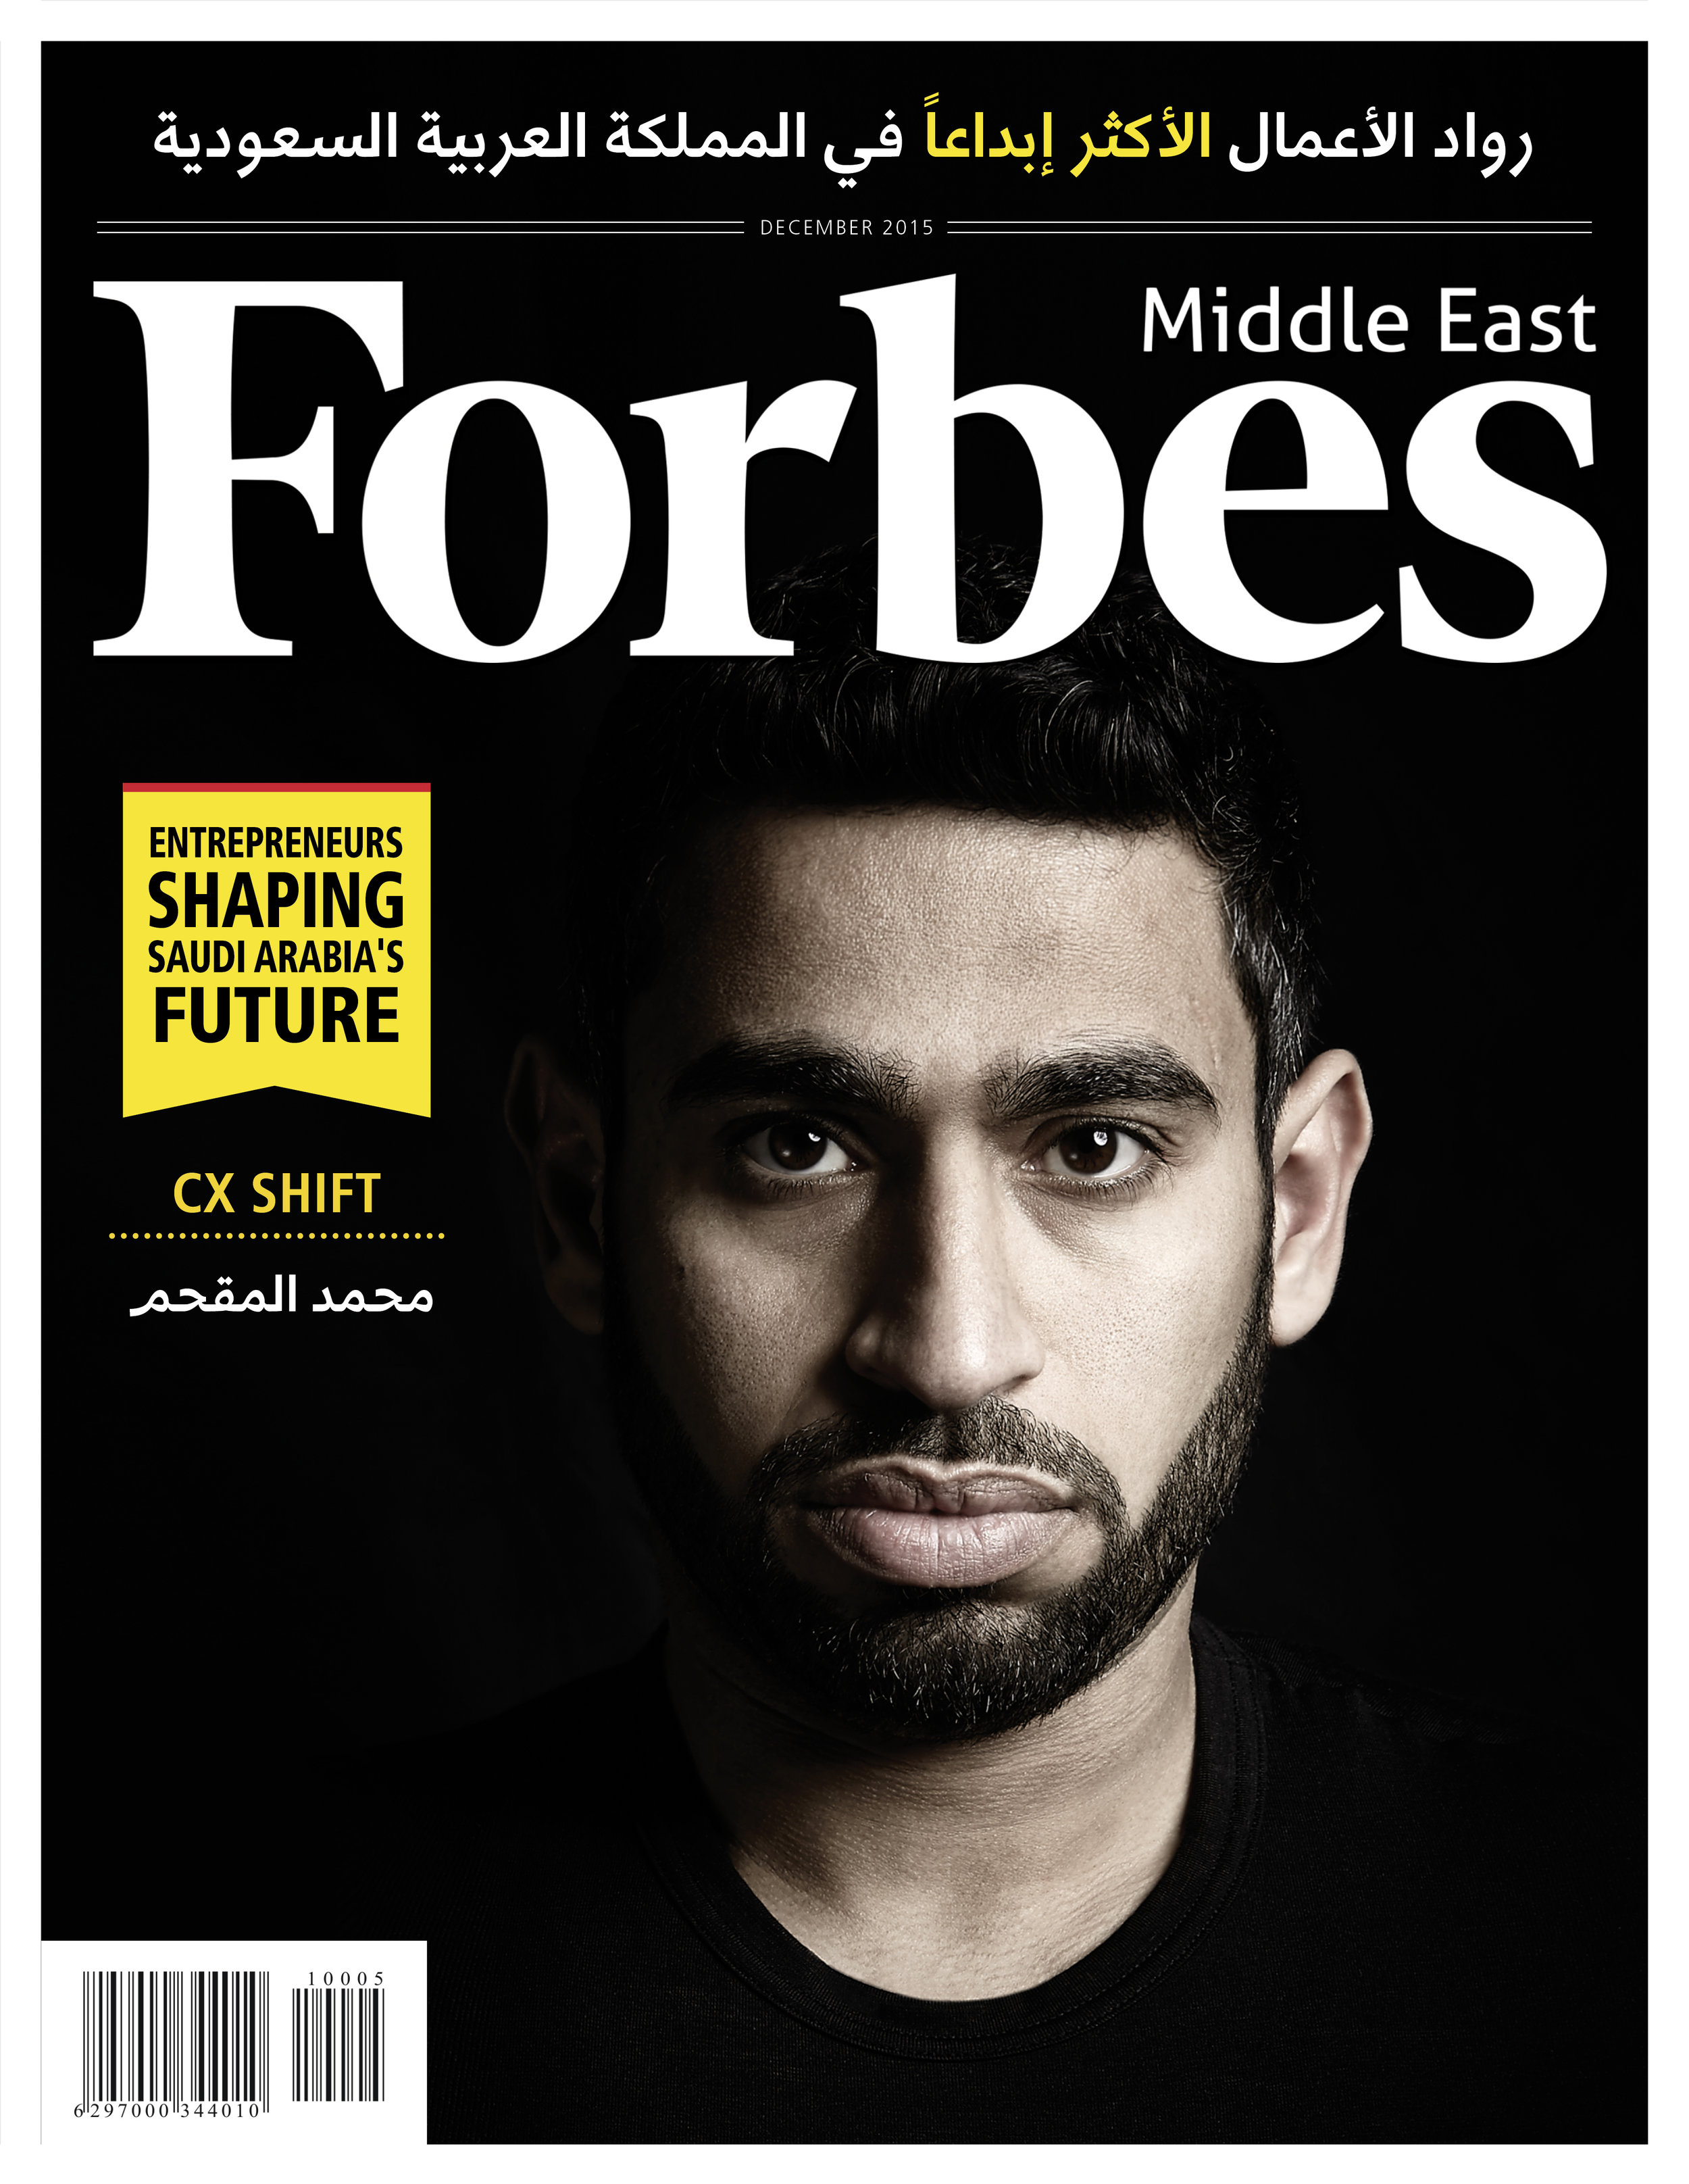 Mohammed Almokhem, CEO of CX Shift,  Entrepreneurs Shaping Saudi Arabia's Future